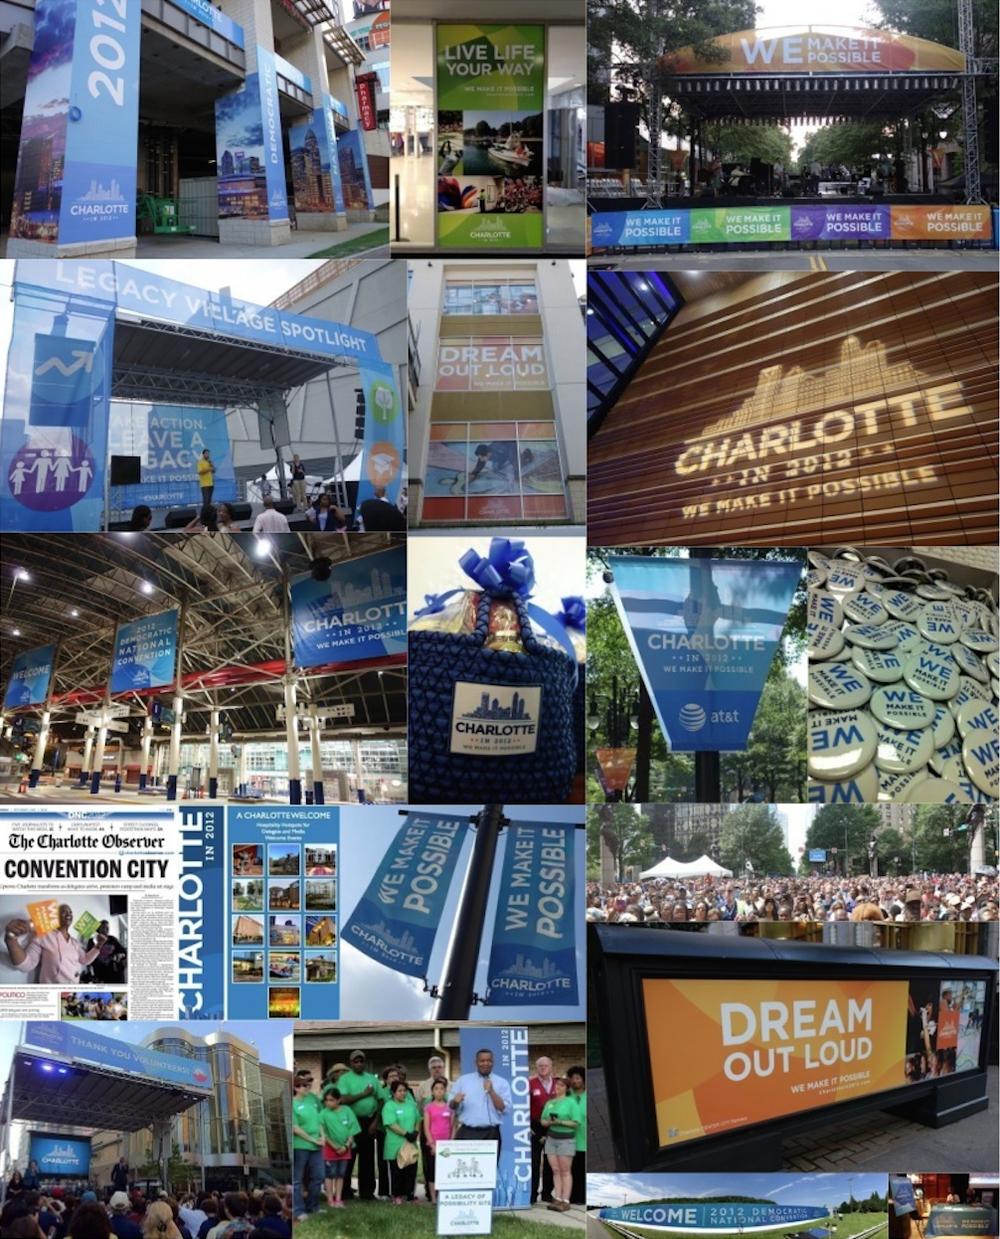 Visual brand activation across the Charlotte region greeted visitors at key touch points in the brand experience, including brand activation at Charlotte-Douglas International Airport, all official host hotels throughout the region, shopping and entertainment venues, cultural facilities, street and highway signage, welcome packet collateral materials, volunteer costuming and digital signage.